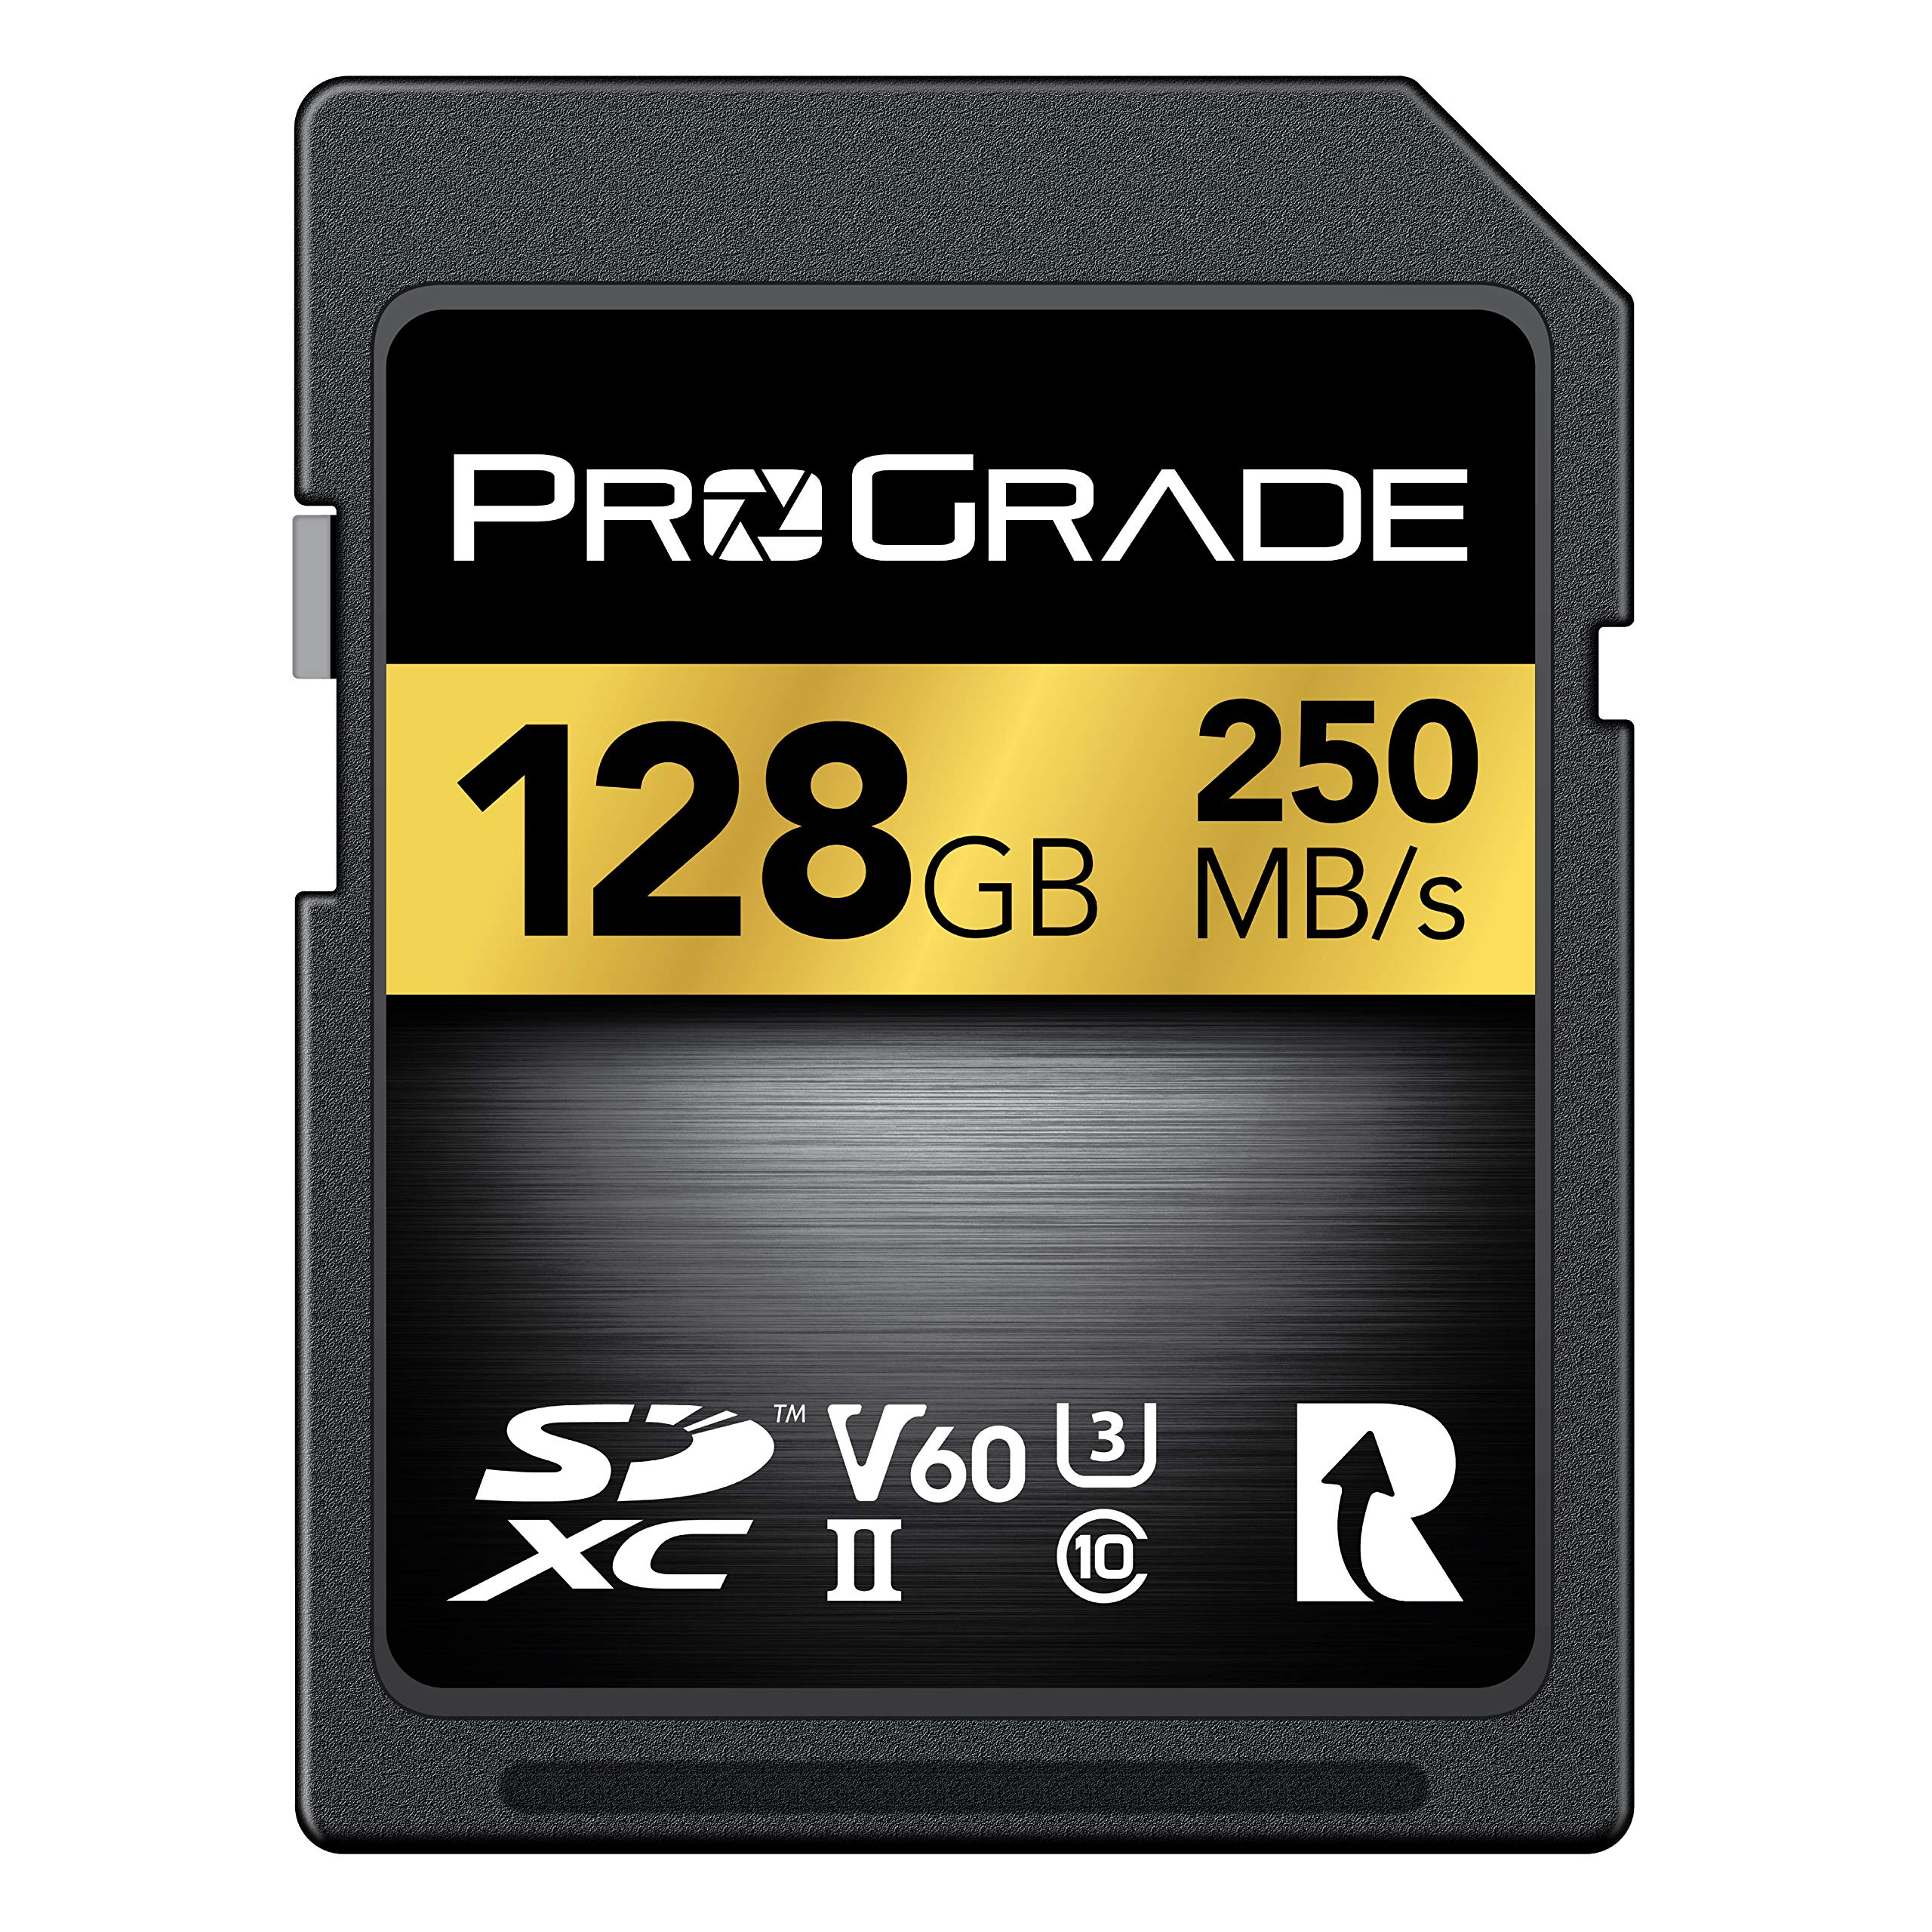 SD Card V60 (128GB) -Up to 130MB/s Write Speed and 250MB/s Read Speed | for Professional Vloggers, Filmmakers, Photographers & Content Curators - Update Firmware Included - by ProGrade Digital by ProGrade Digital